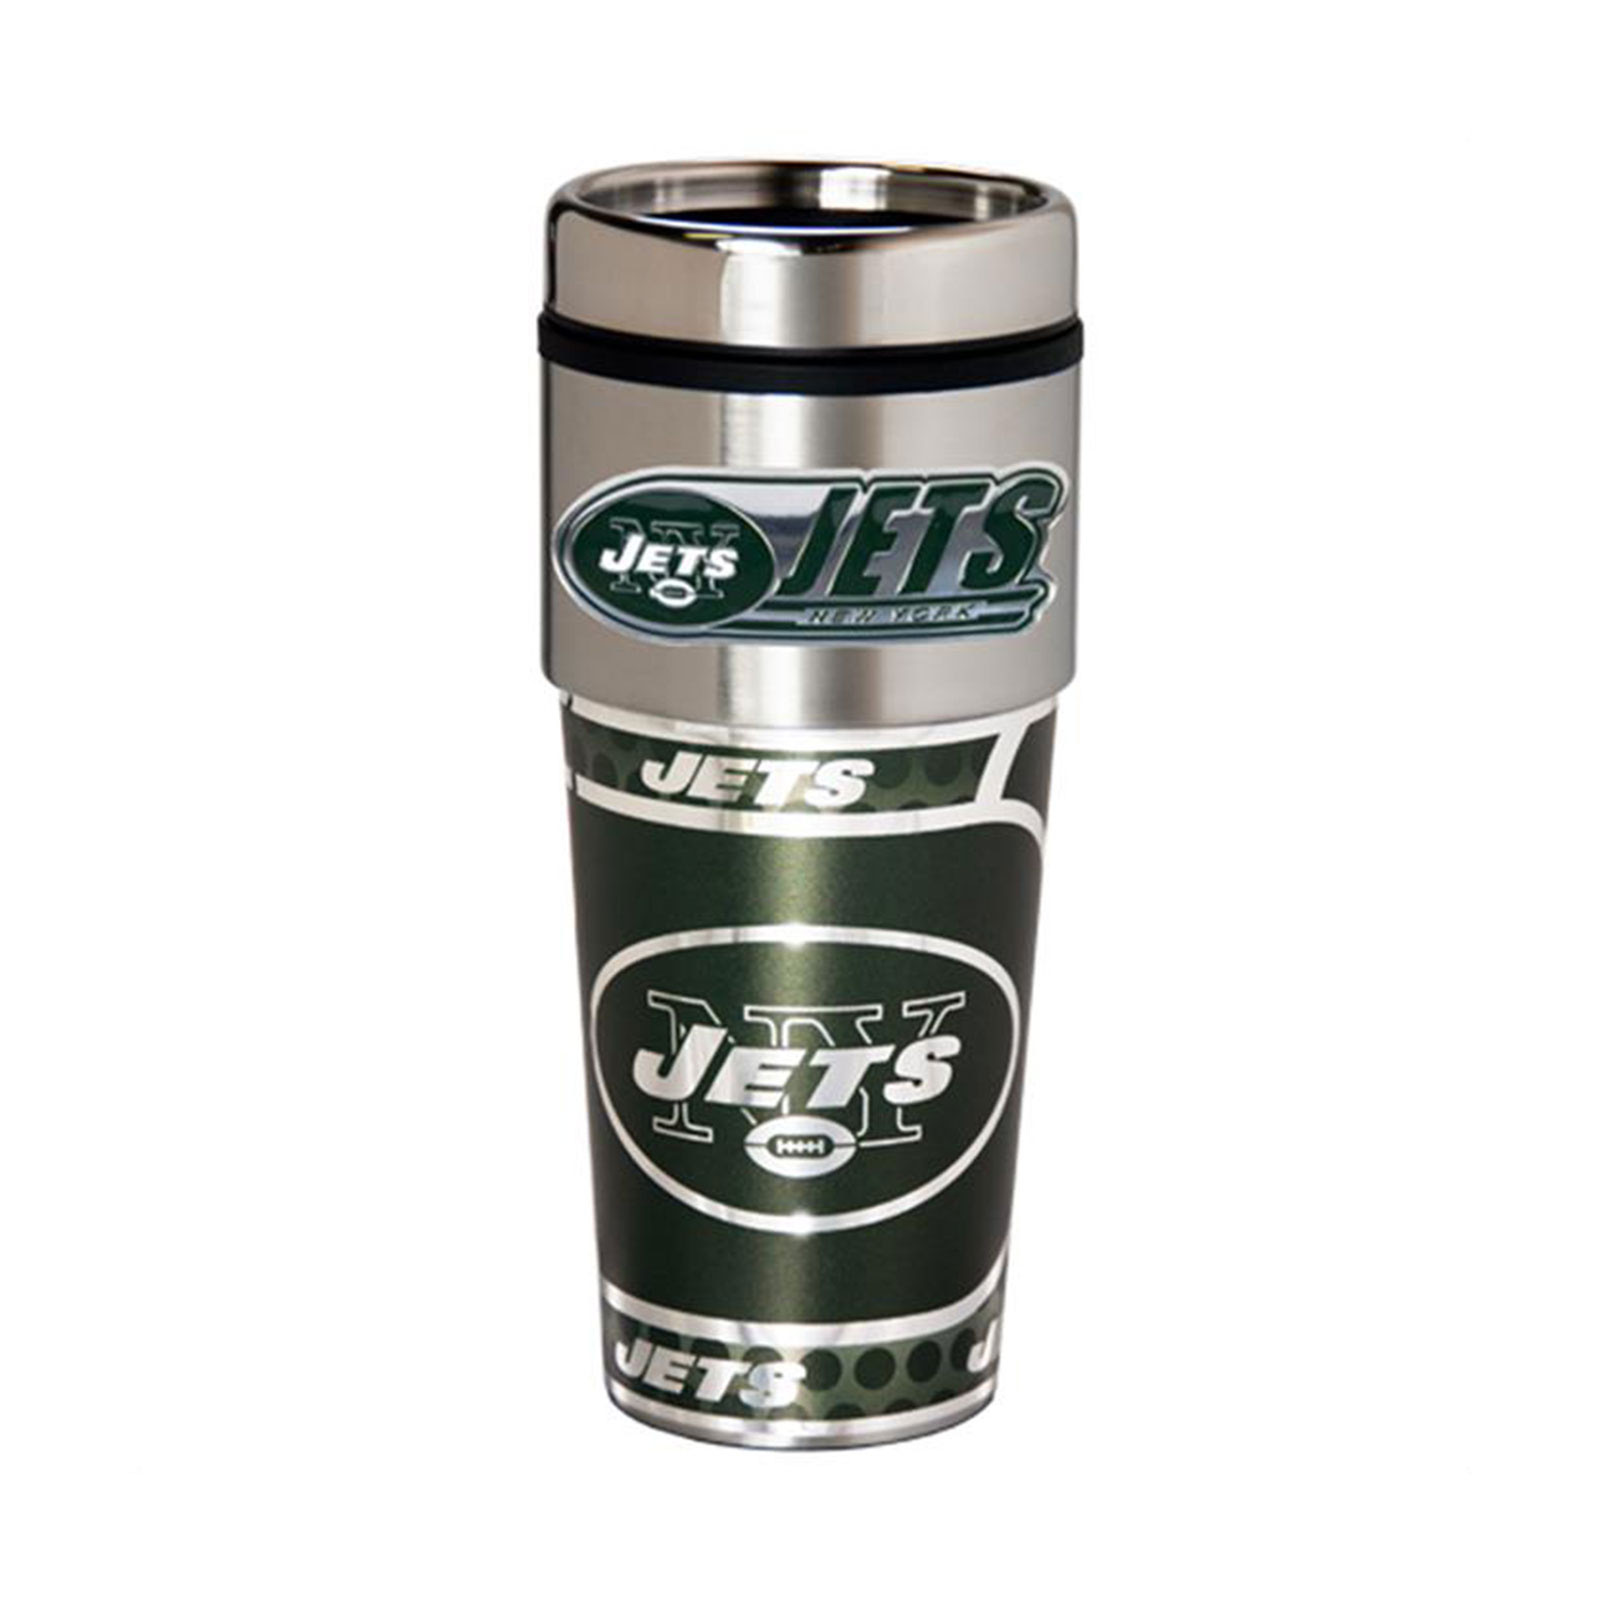 New York Jets Travel Mug NFL Football Team Logo 16 oz Coffee Tea NYJ New  eBay